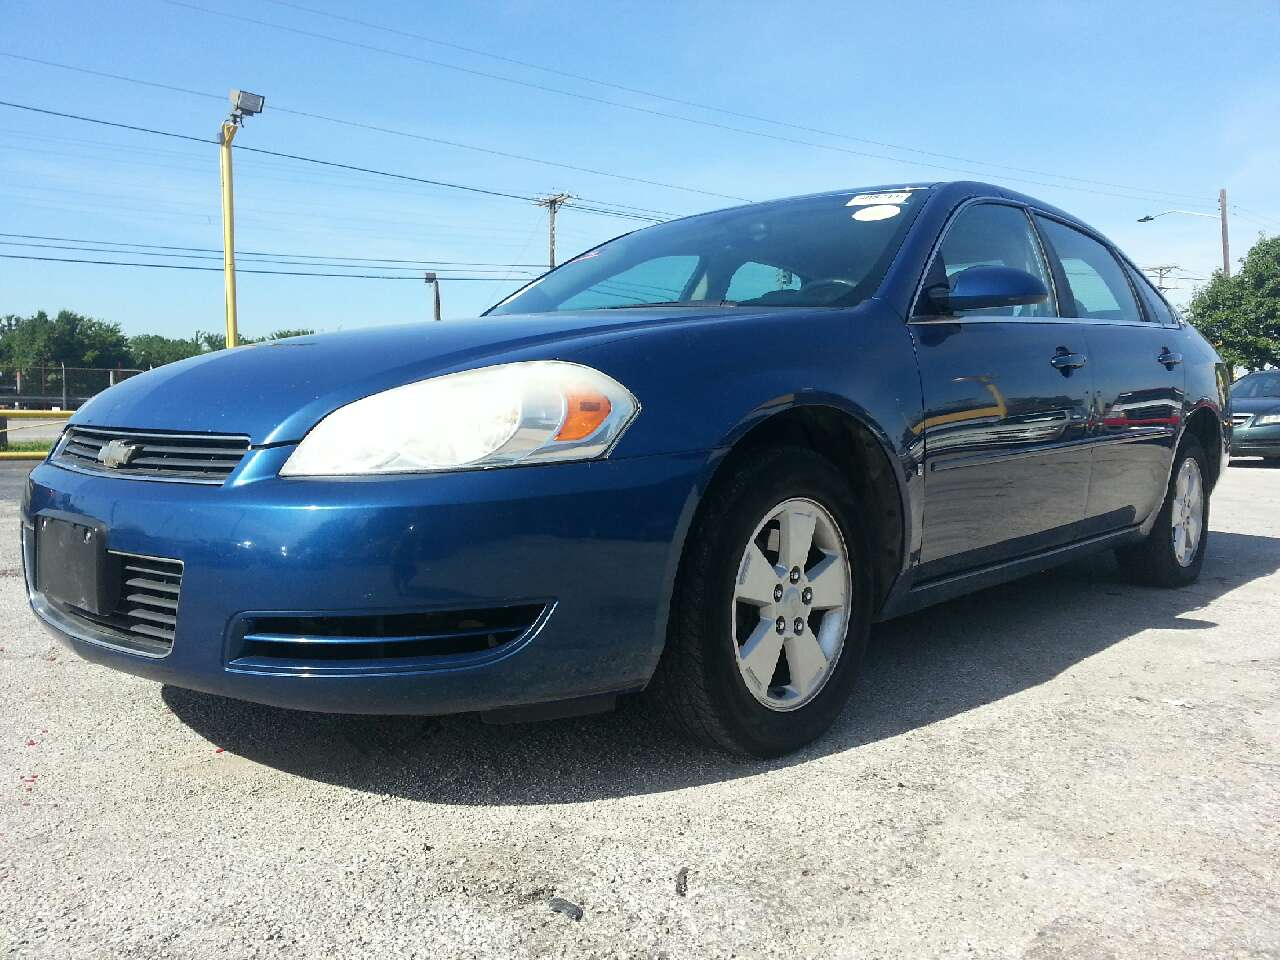 letgo 2006 chevy impala lt in grand prairie tx. Black Bedroom Furniture Sets. Home Design Ideas